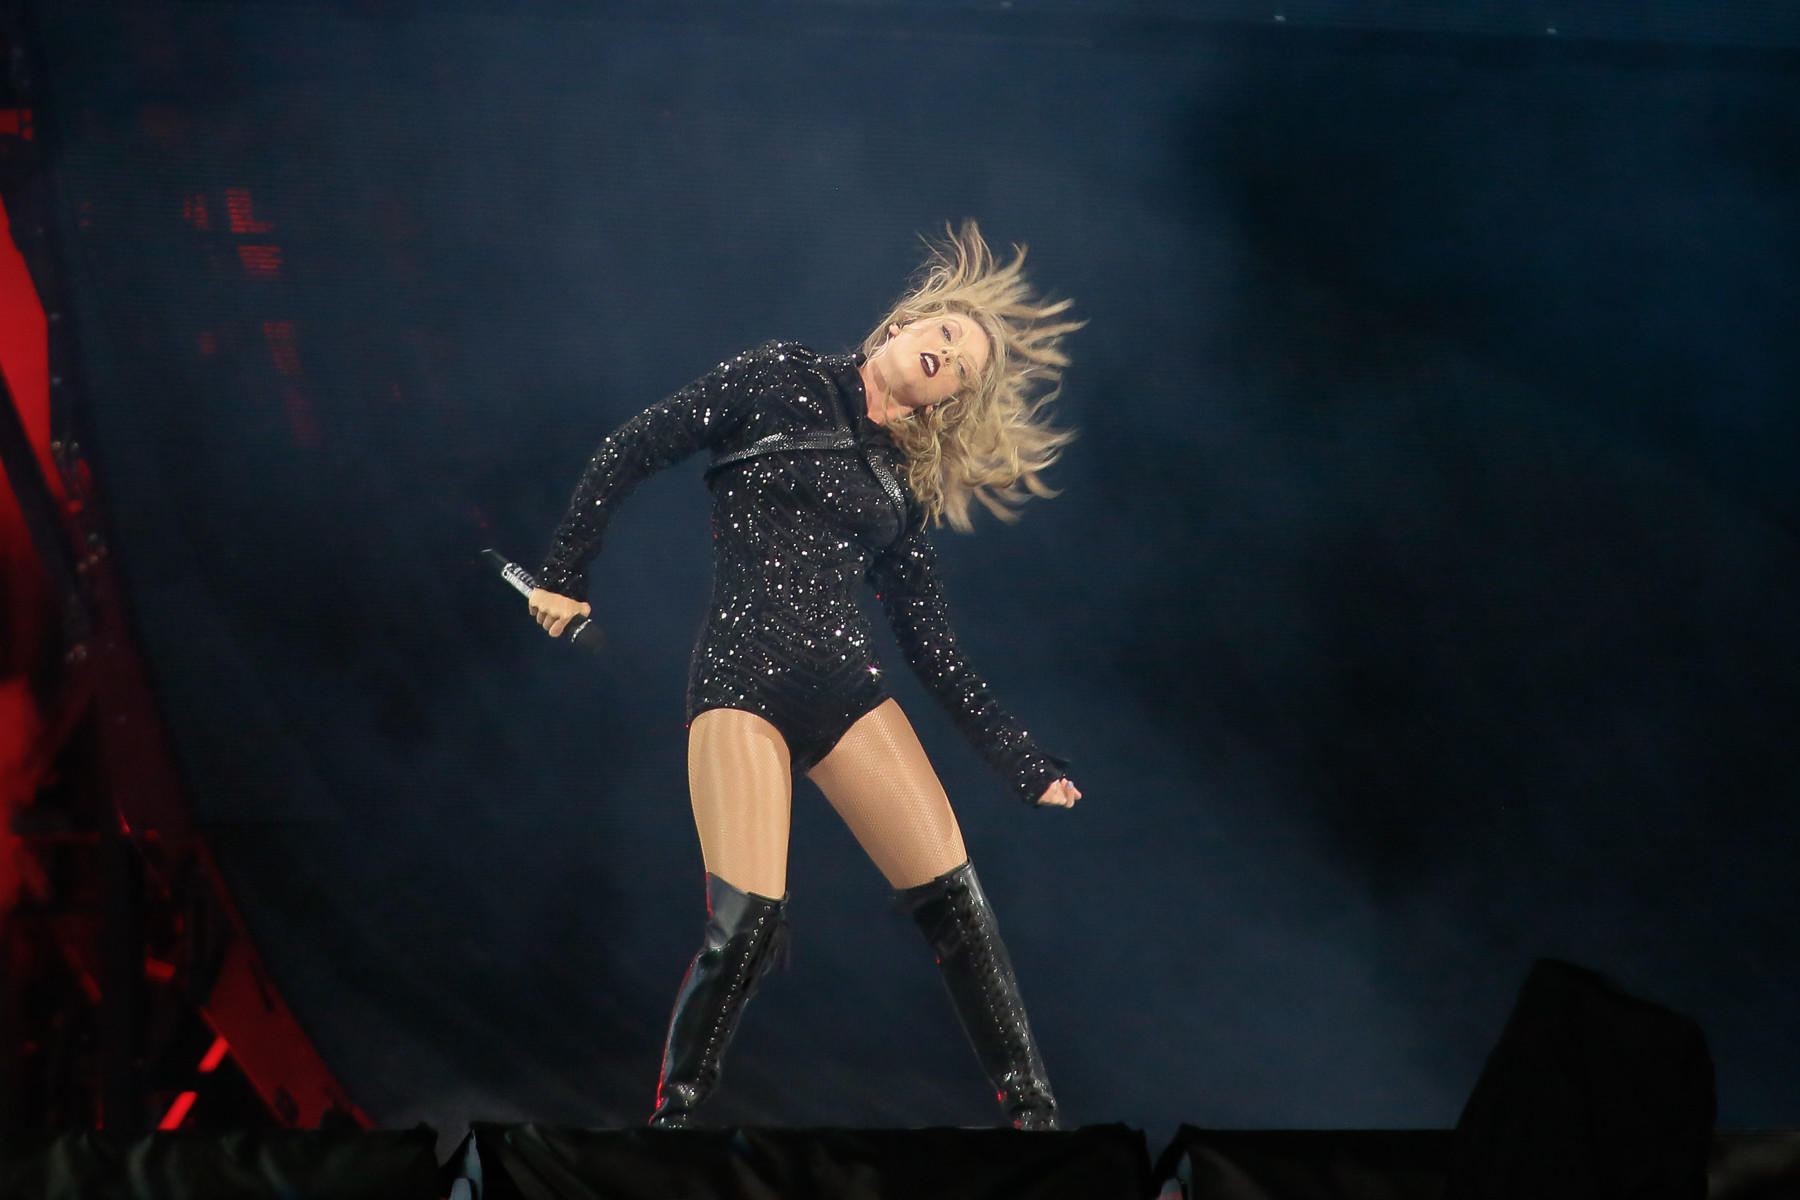 Taylor Swift performs at Philadephia's Lincoln Financial Field on July 13